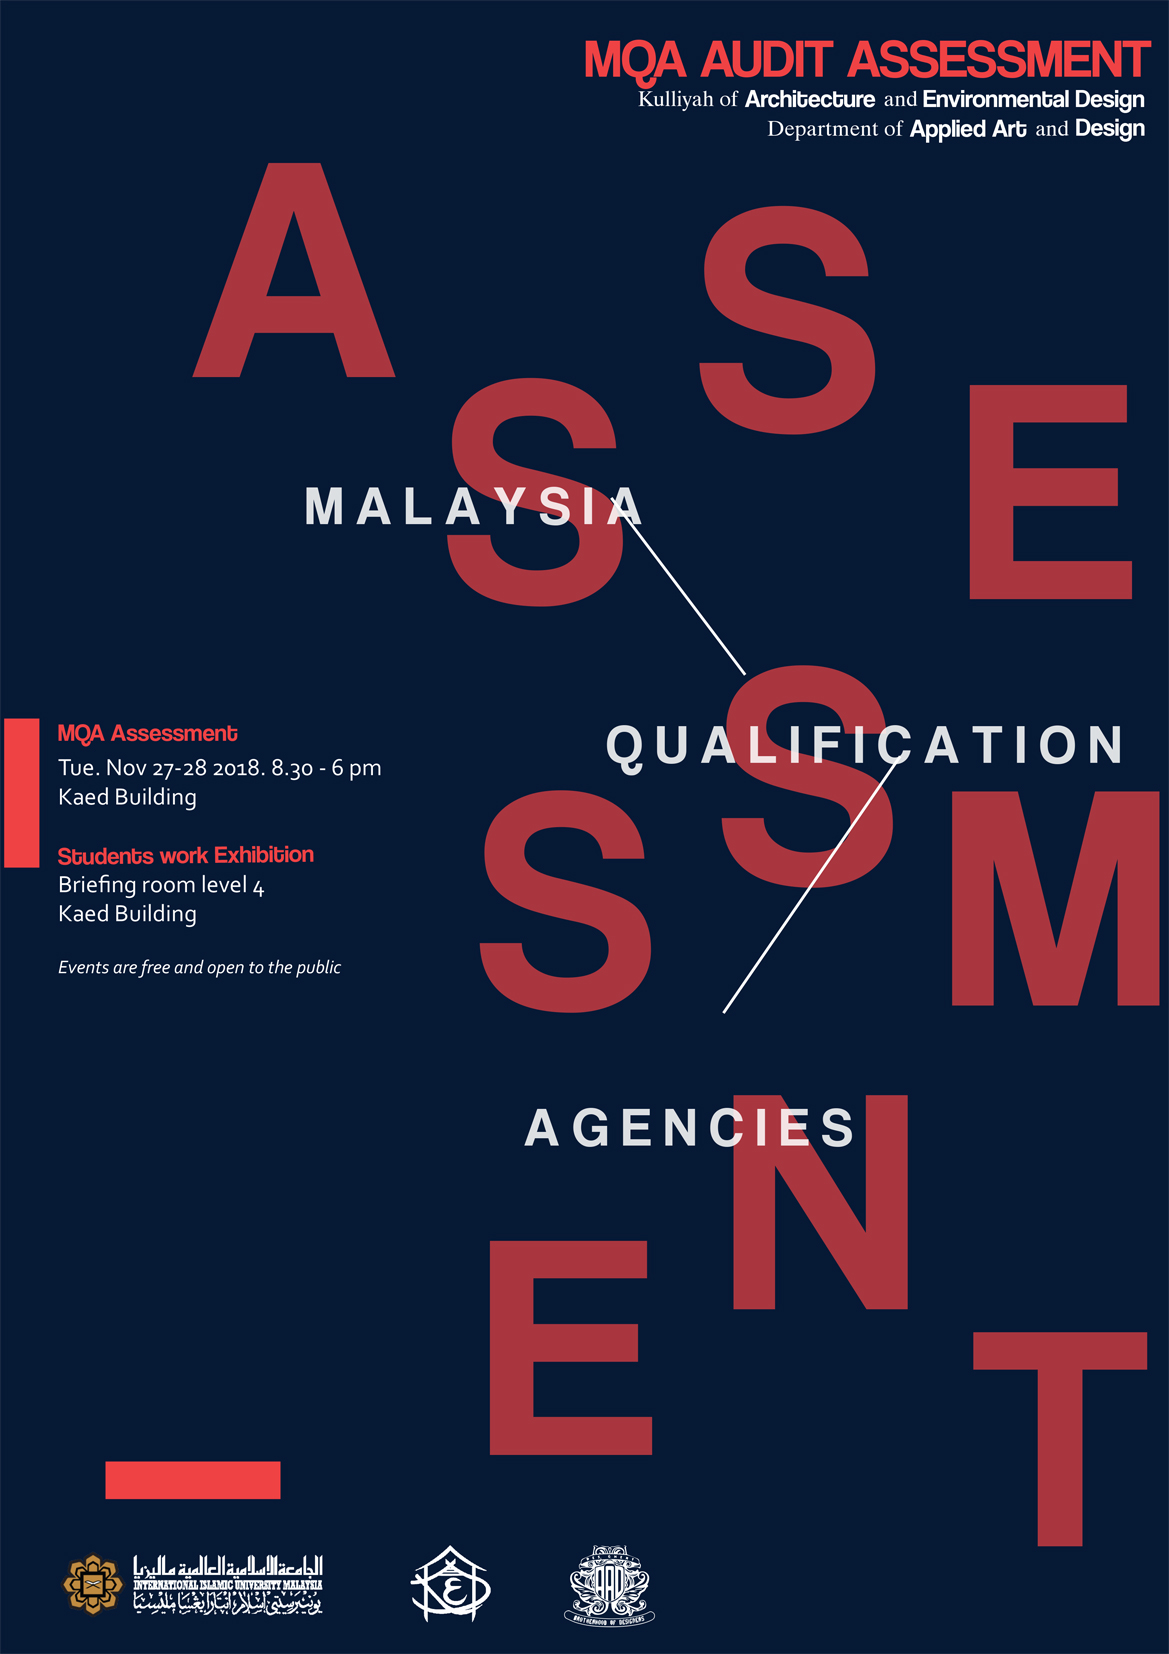 MQA Audit Assessment 2018 for Depatment of Applied Arts and Design